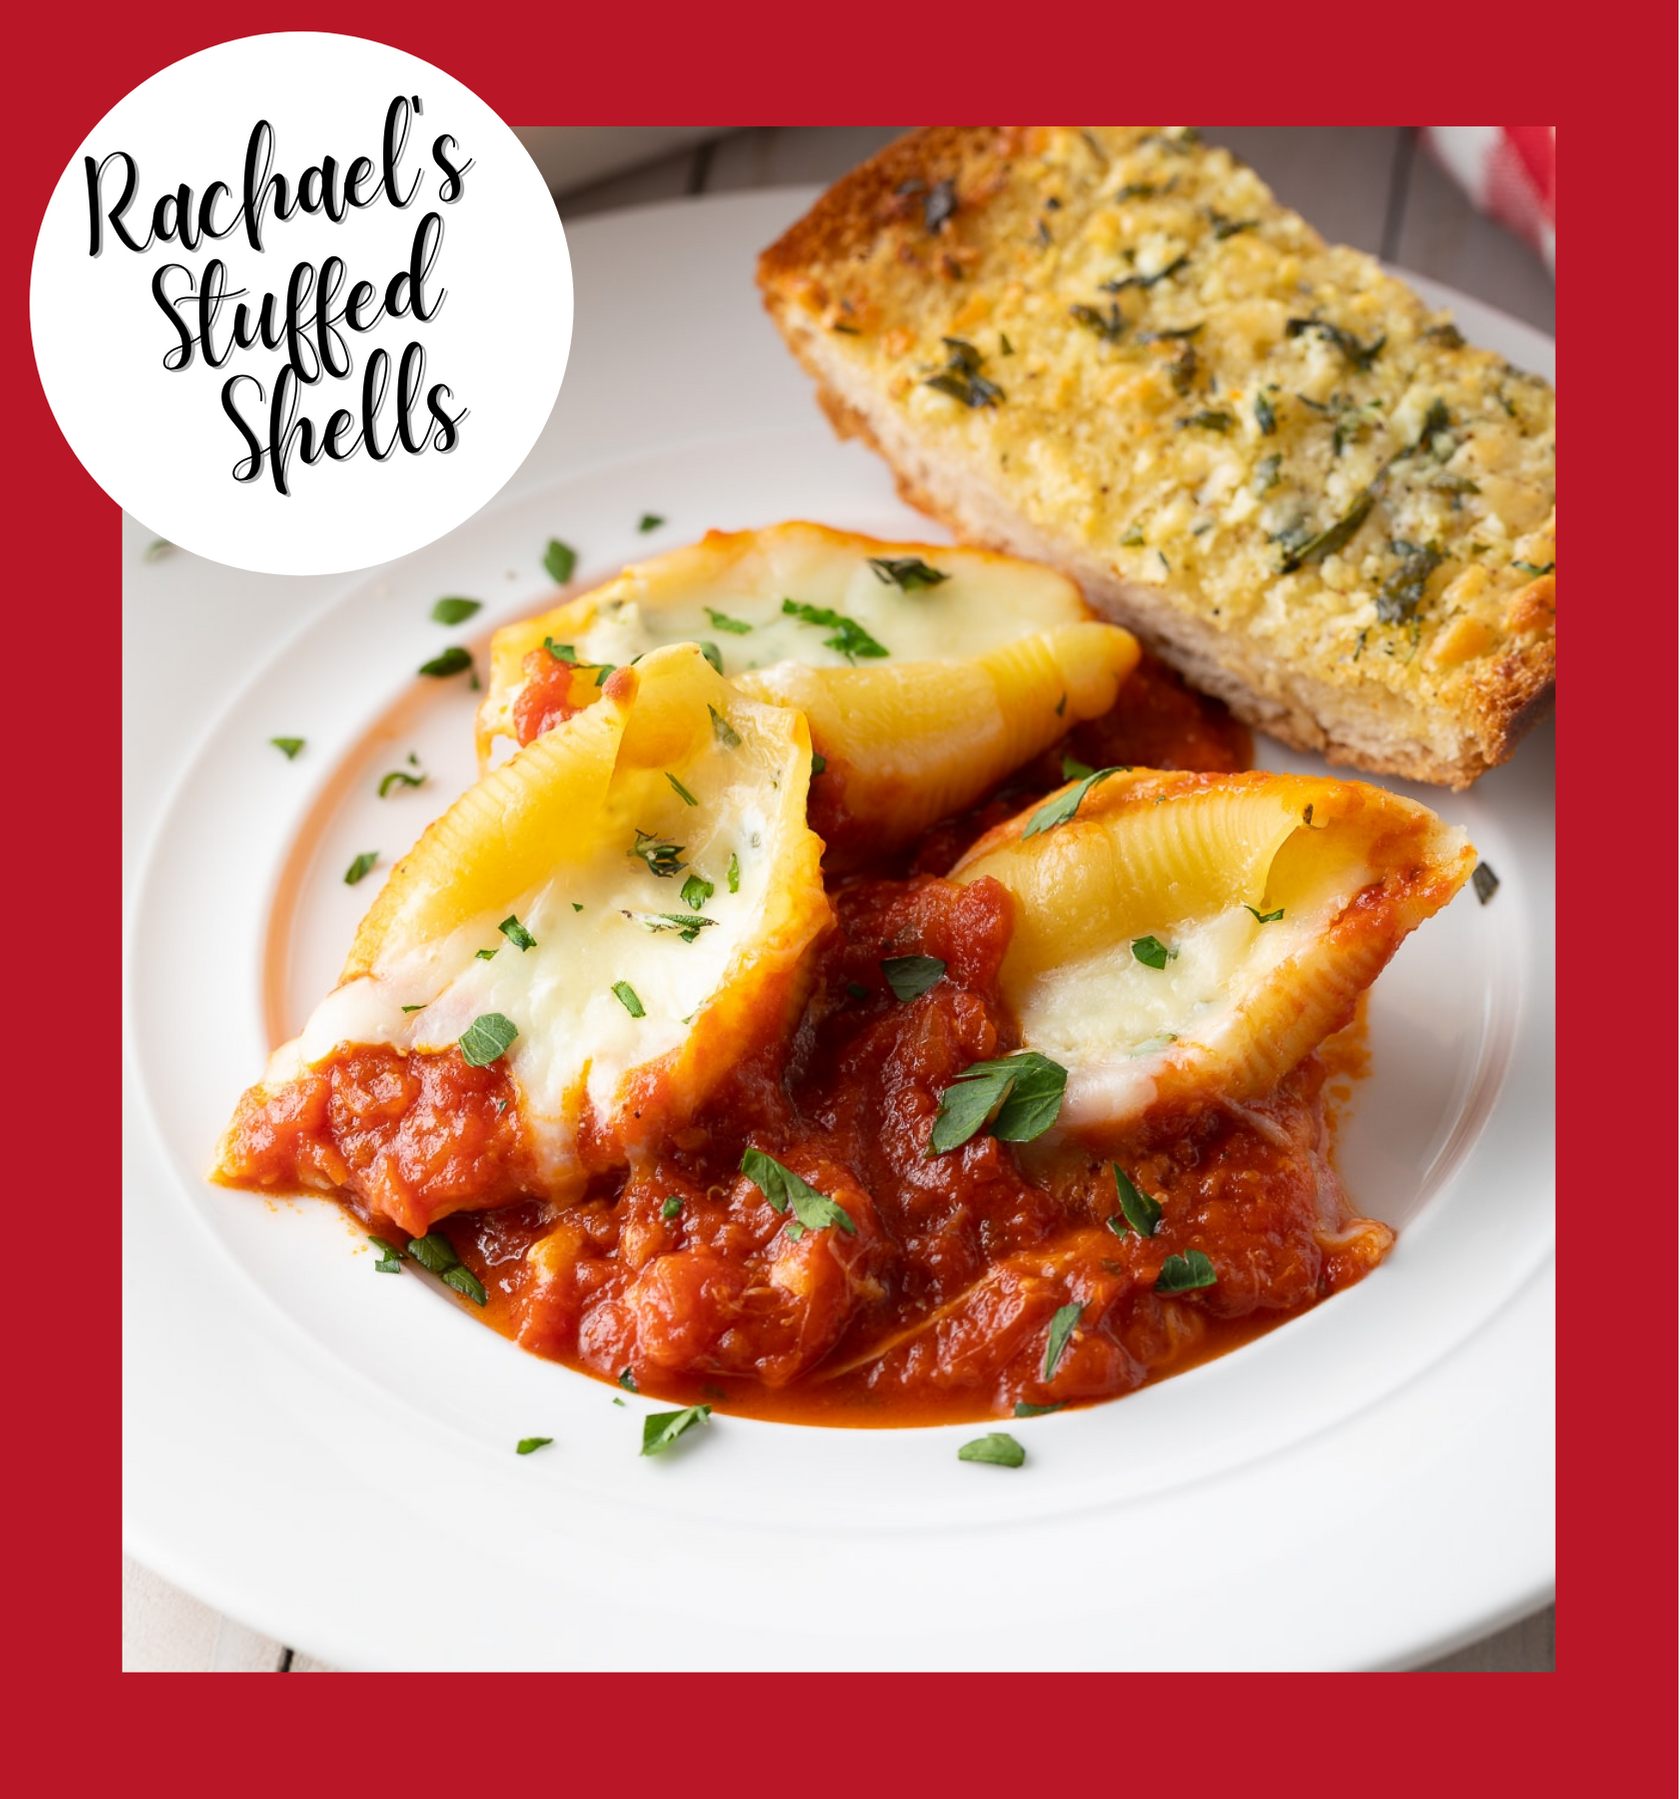 Rachae's Stuffed Shells